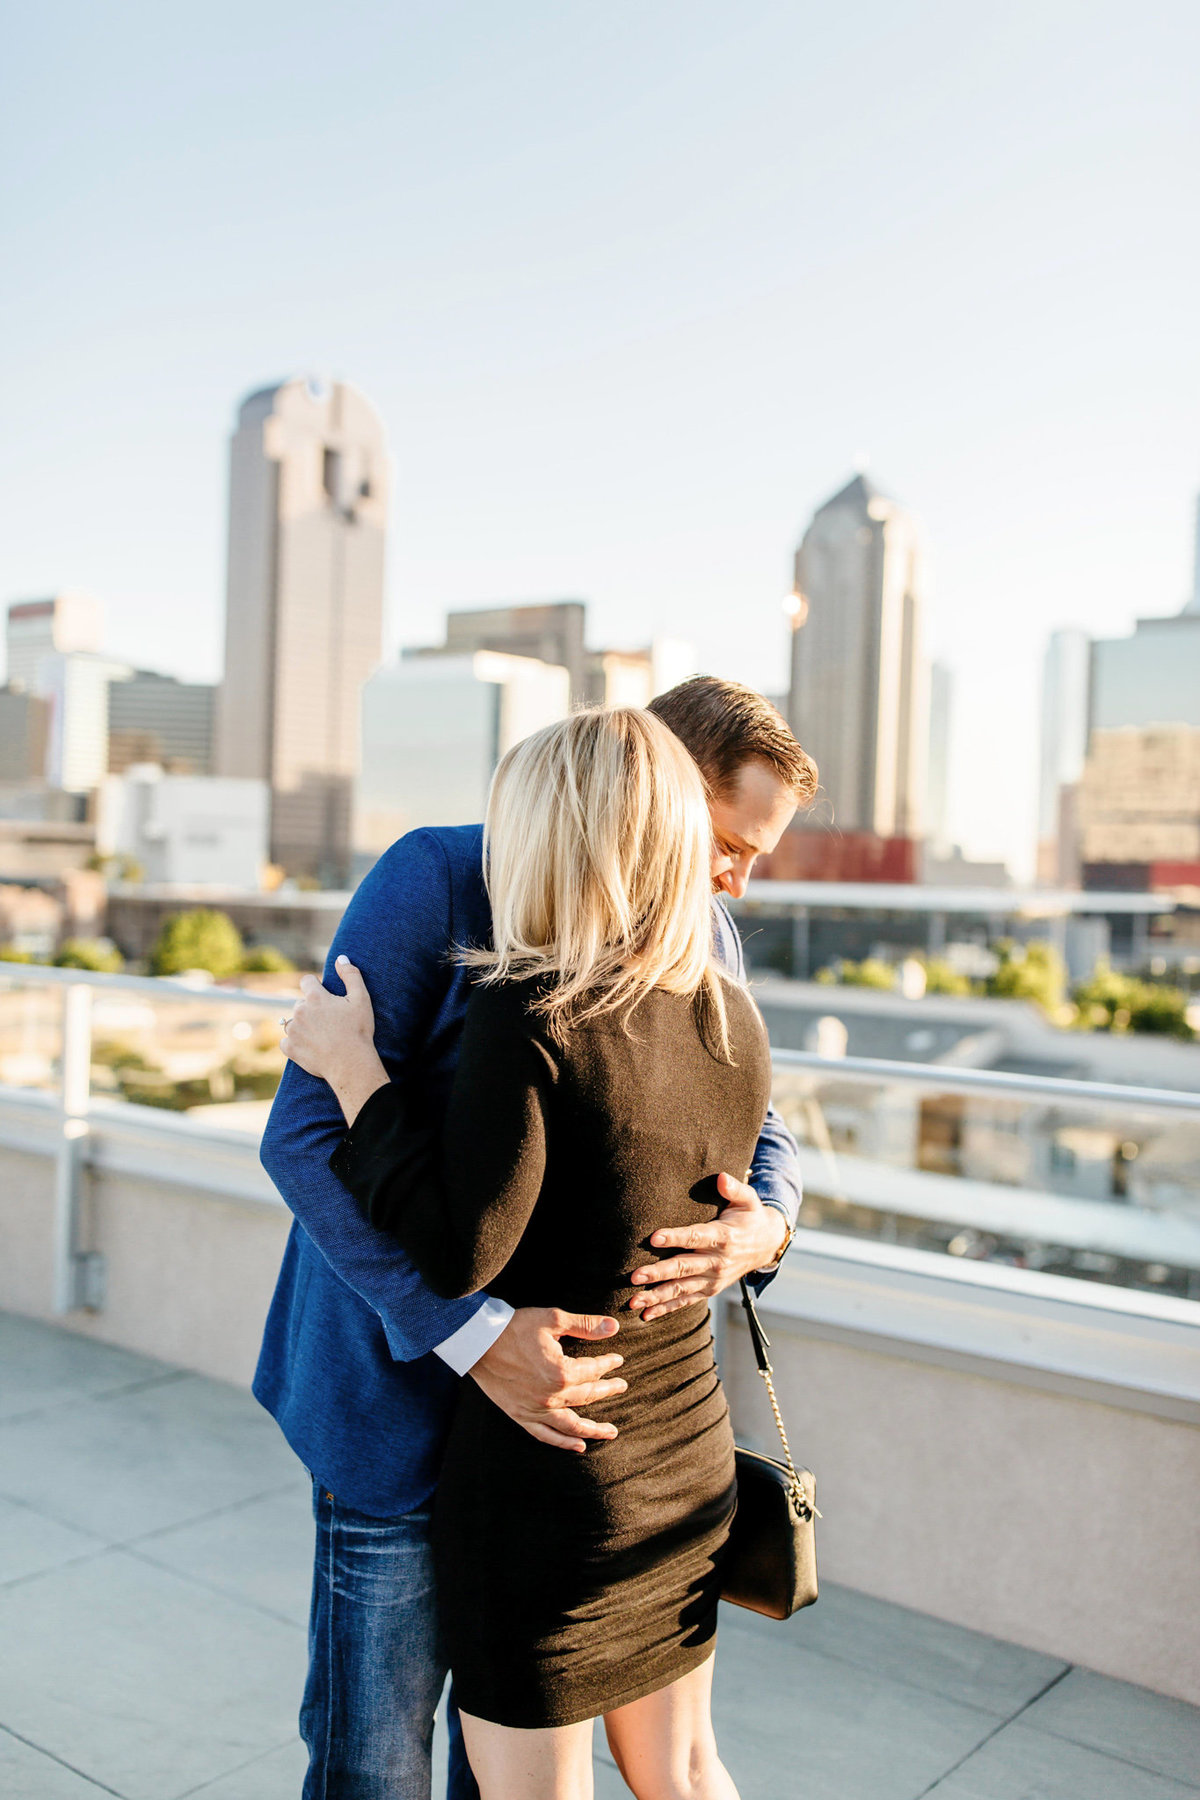 Eric & Megan - Downtown Dallas Rooftop Proposal & Engagement Session-48